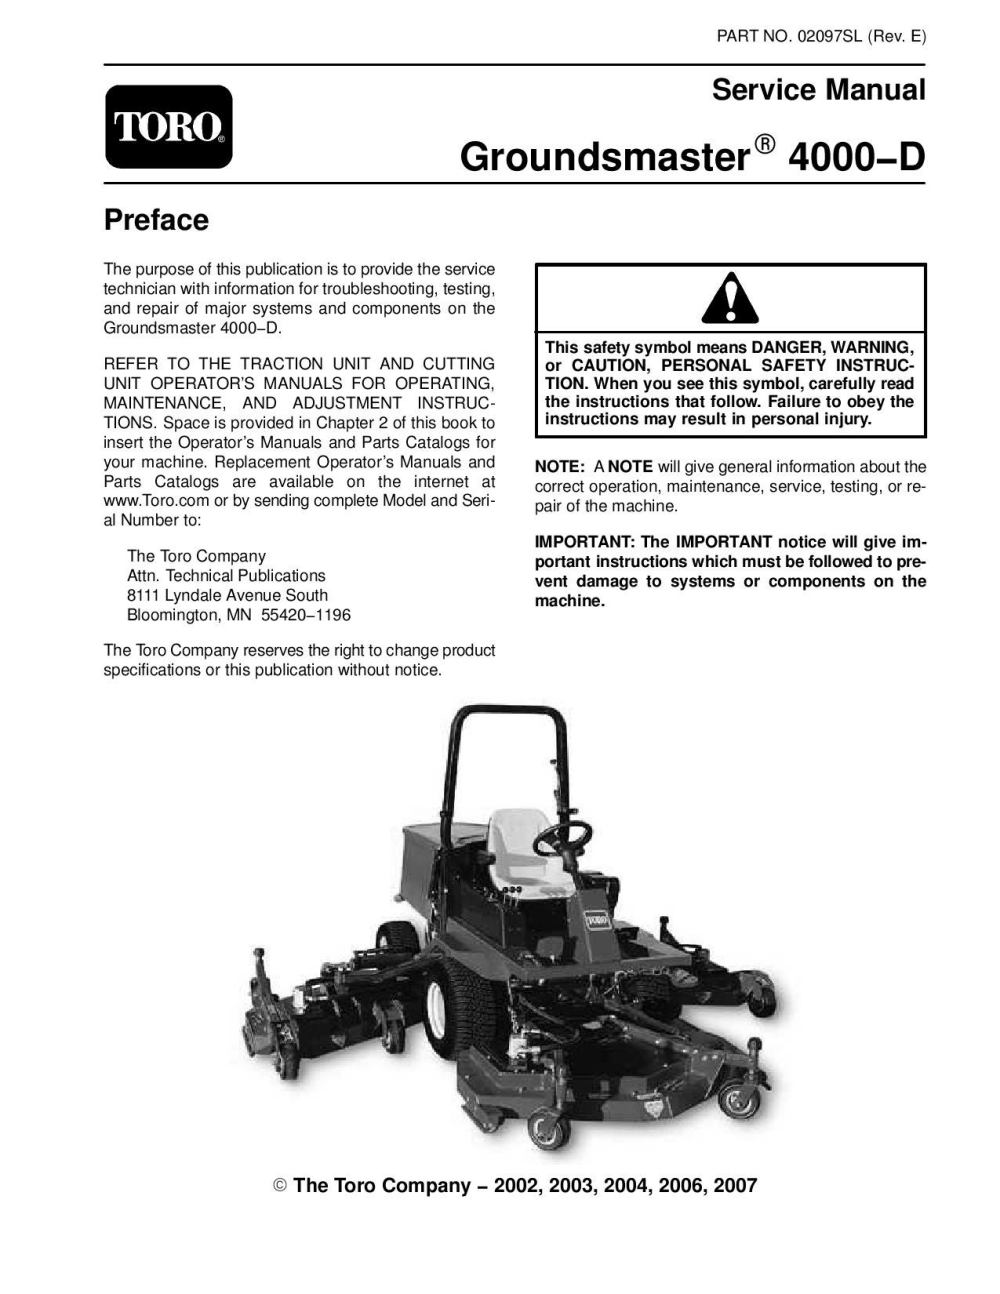 medium resolution of 02097sl pdf groundsmaster 4000 d model 30410 rev e dec 2007 by negimachi negimachi issuu